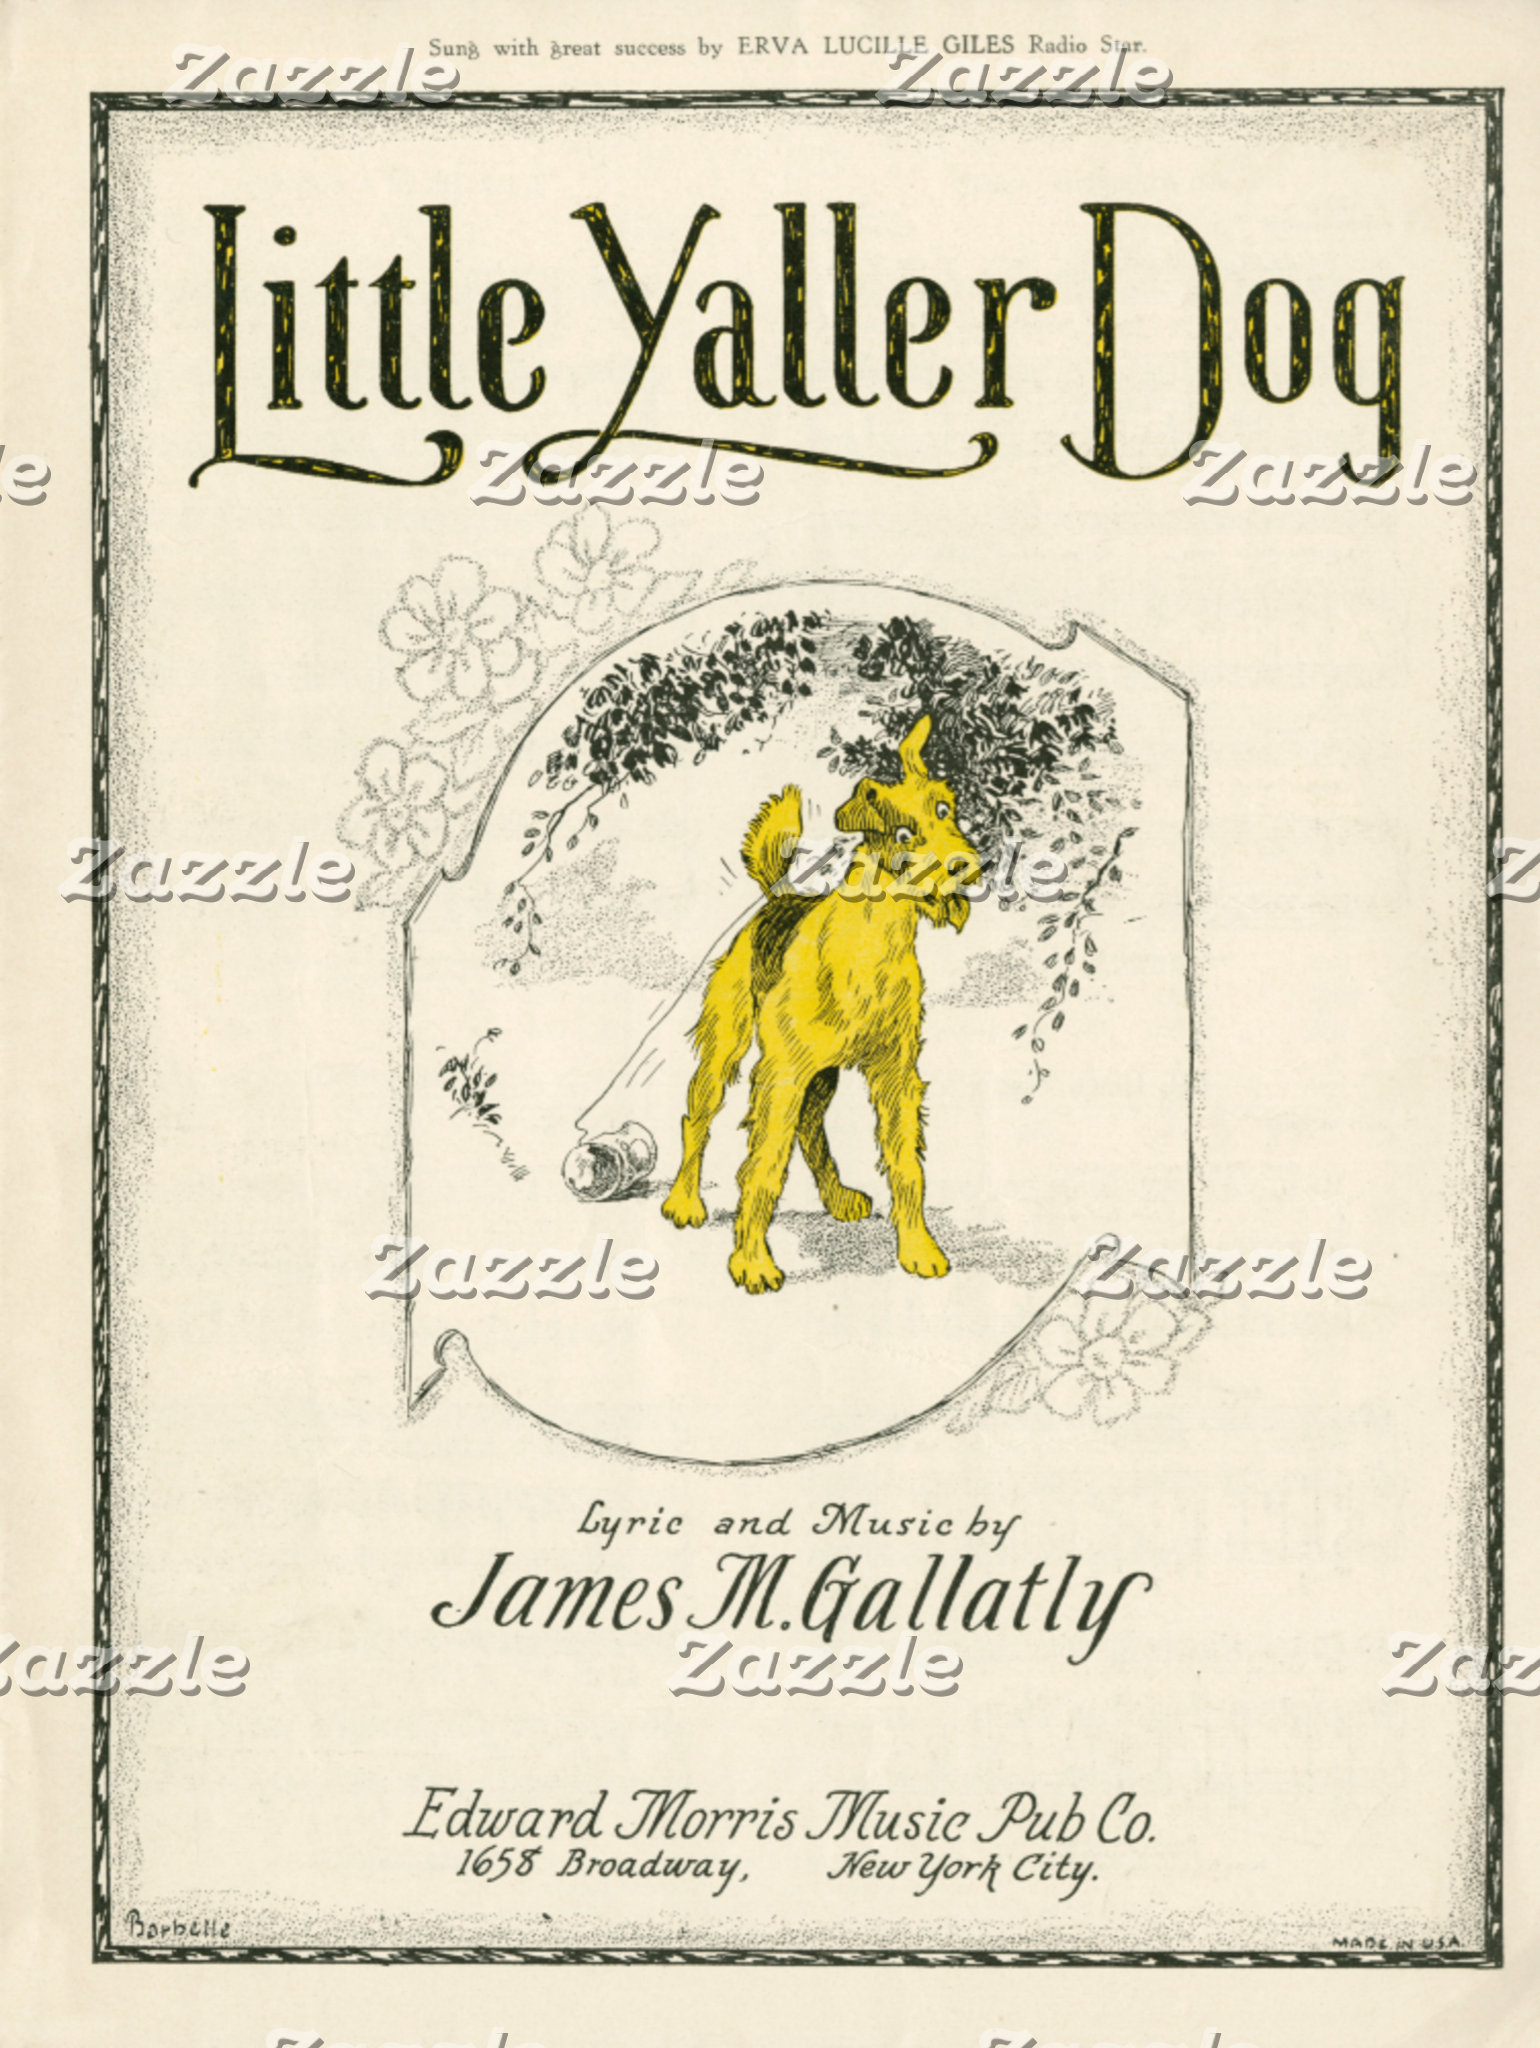 Little Yaller Dog